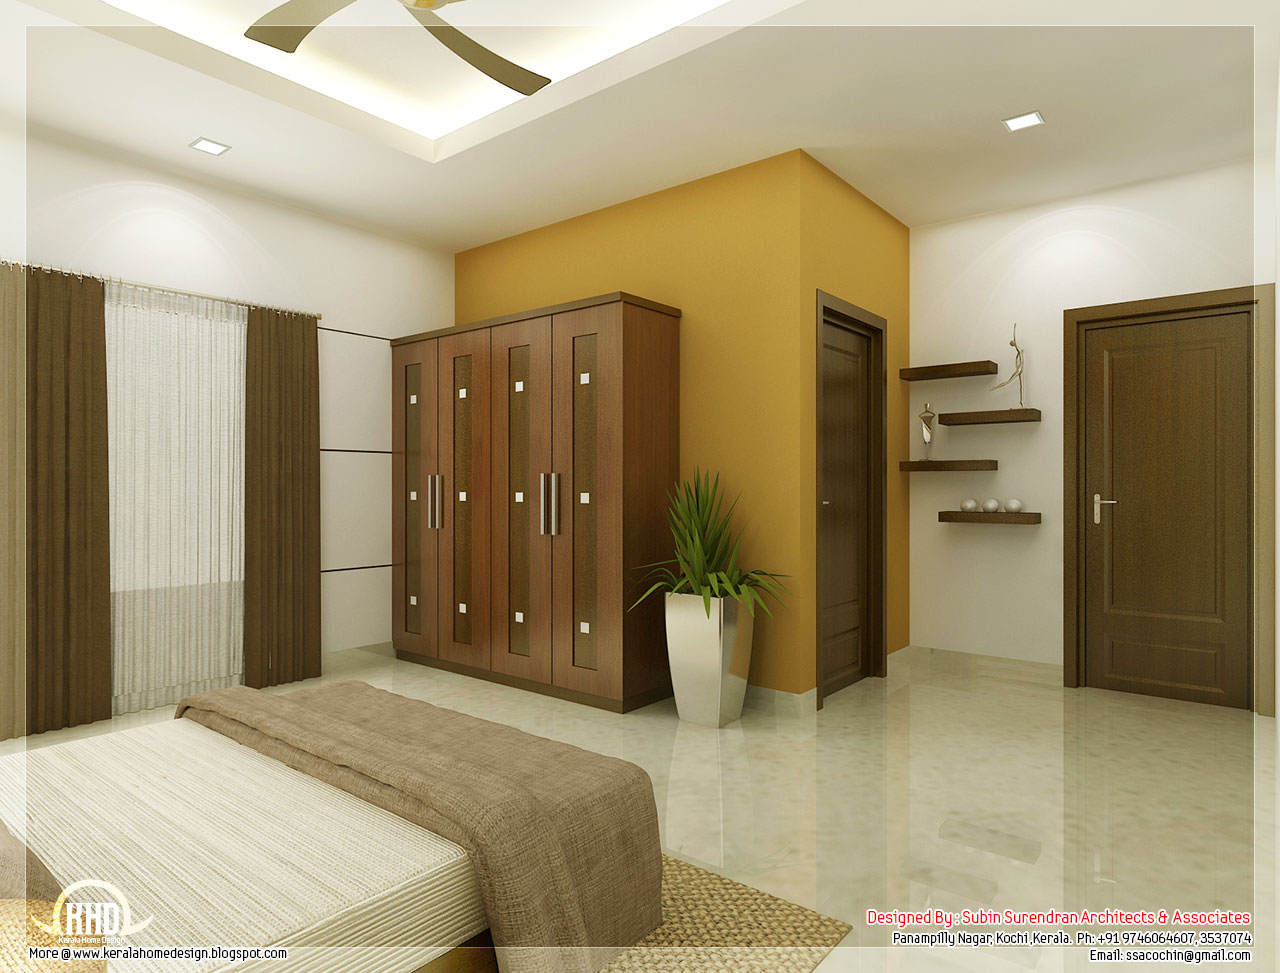 beautiful bedroom interior designs kerala home design and floor plans. Black Bedroom Furniture Sets. Home Design Ideas